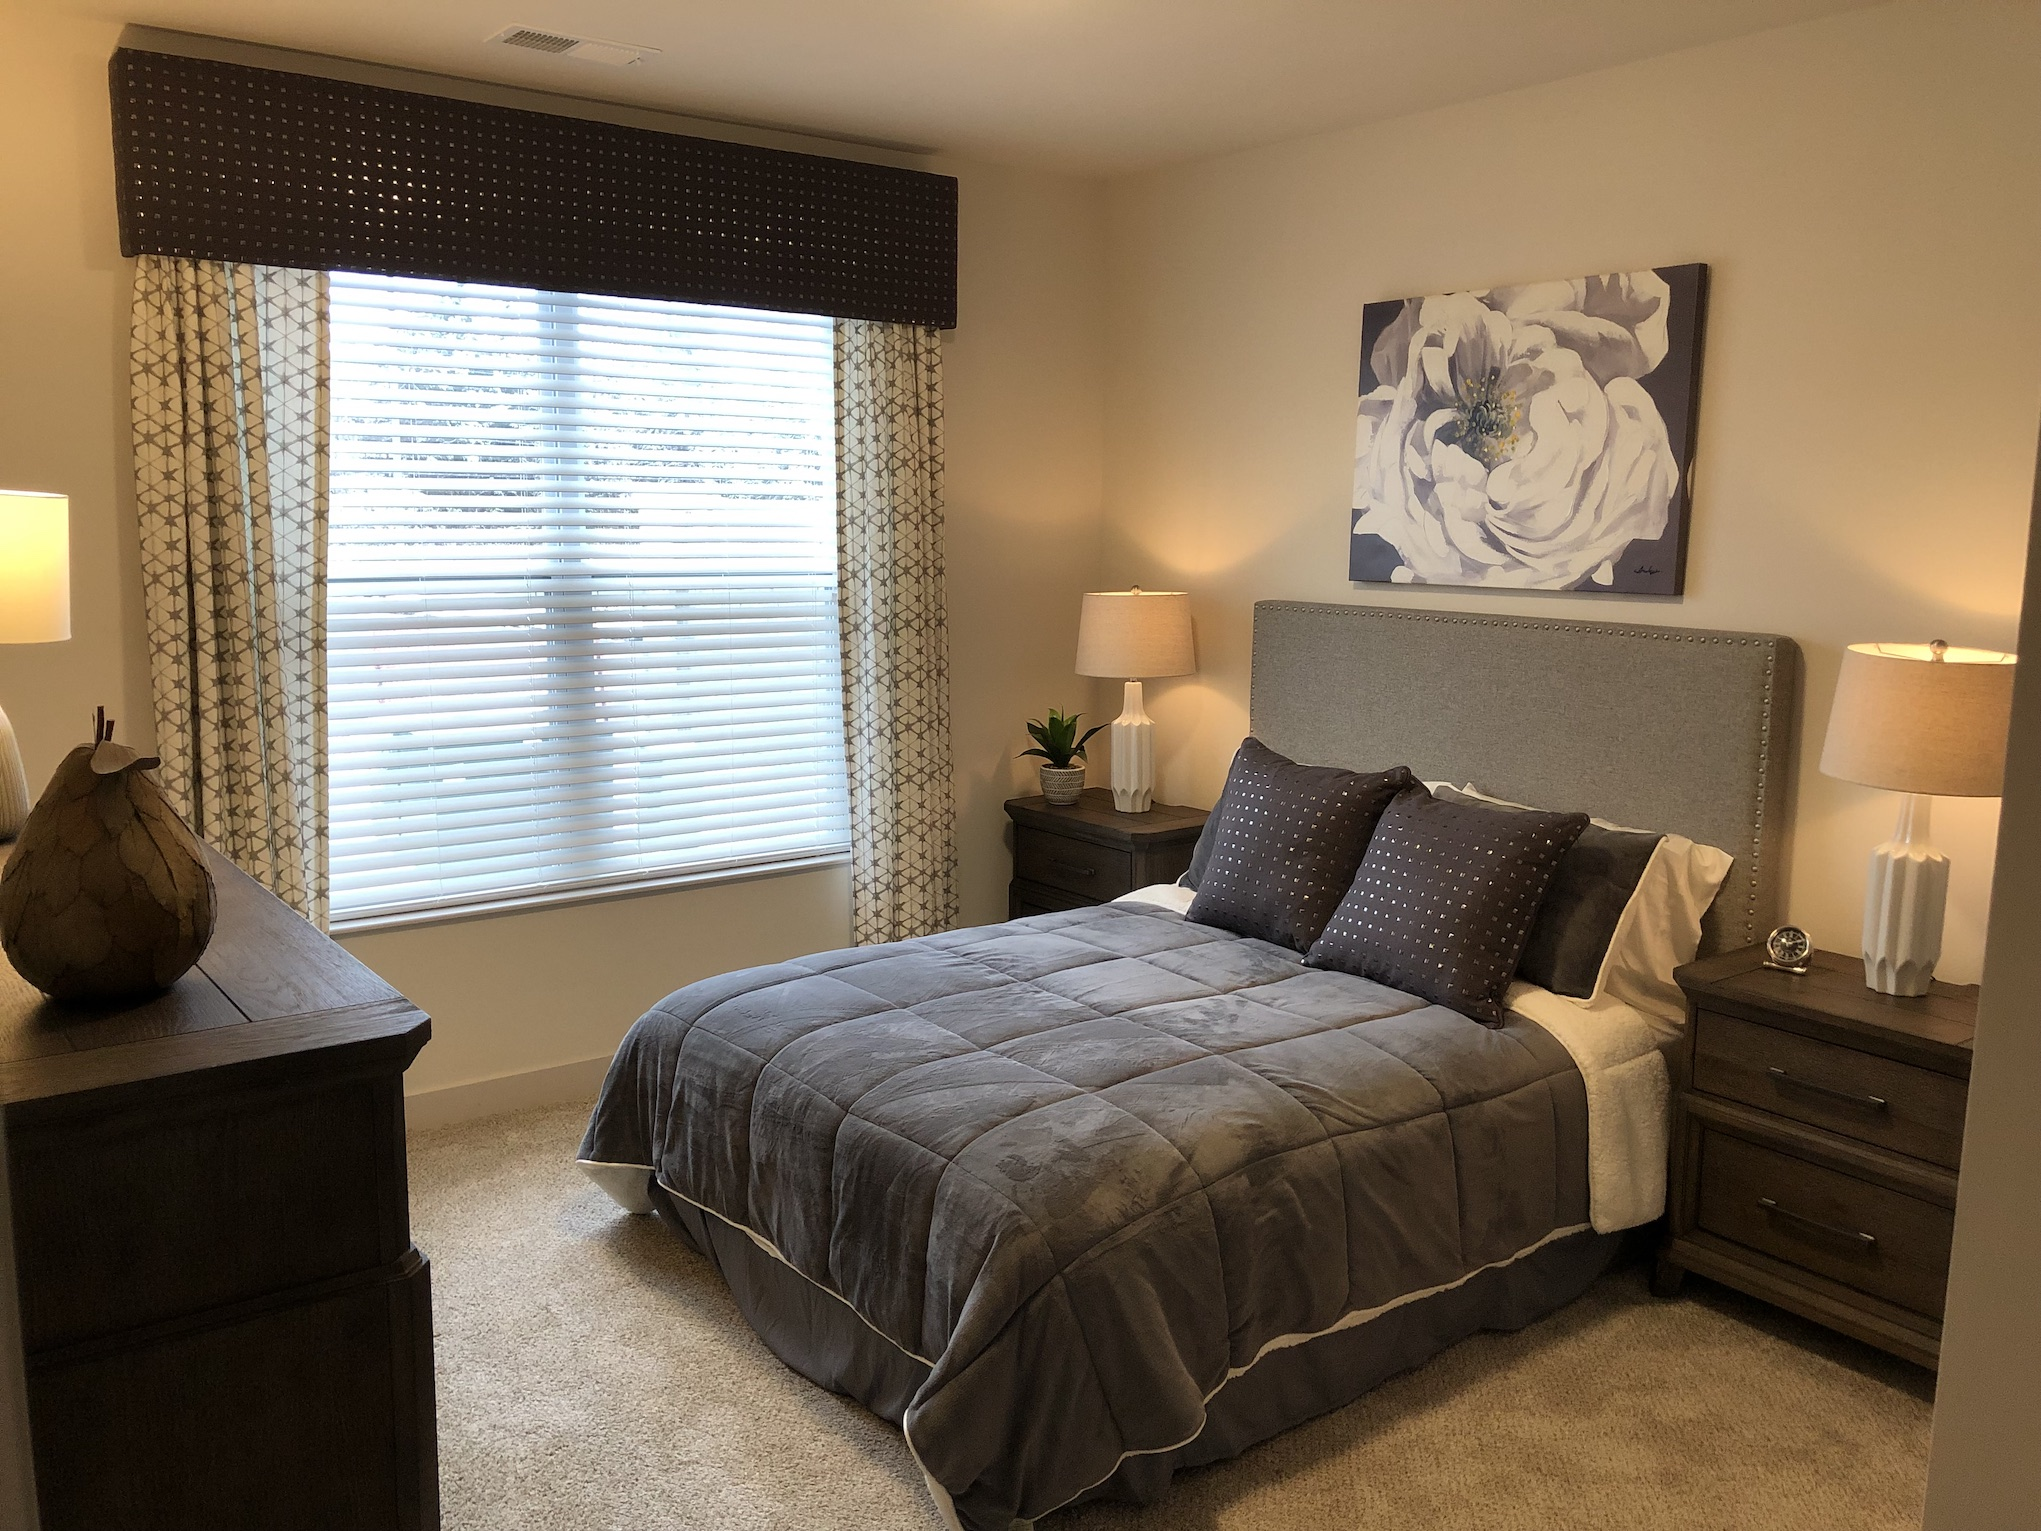 1, 2, and 3-Bedroom Apartments for Rent at River Ridge Apartments in Loveland, Ohio